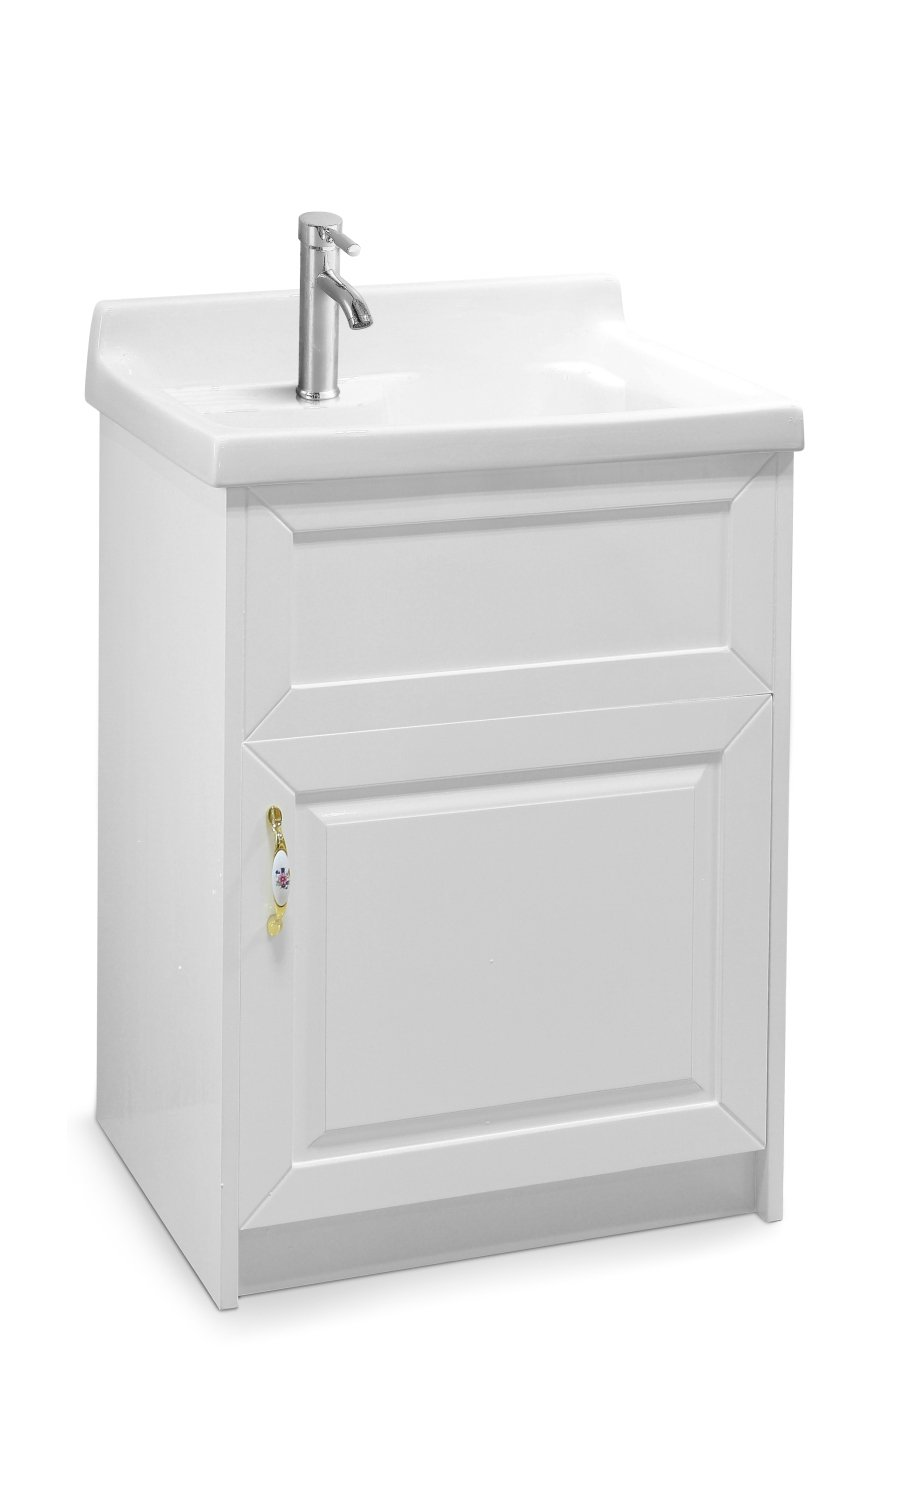 sink ALEXANDER 24'' WHITE Utility Sink - Modern Mop Slop Tub Deep Sink Ceramic Laundry Room Vanity Cabinet Contemporary Hardwood Hard by www.LuxuryModernHome.com